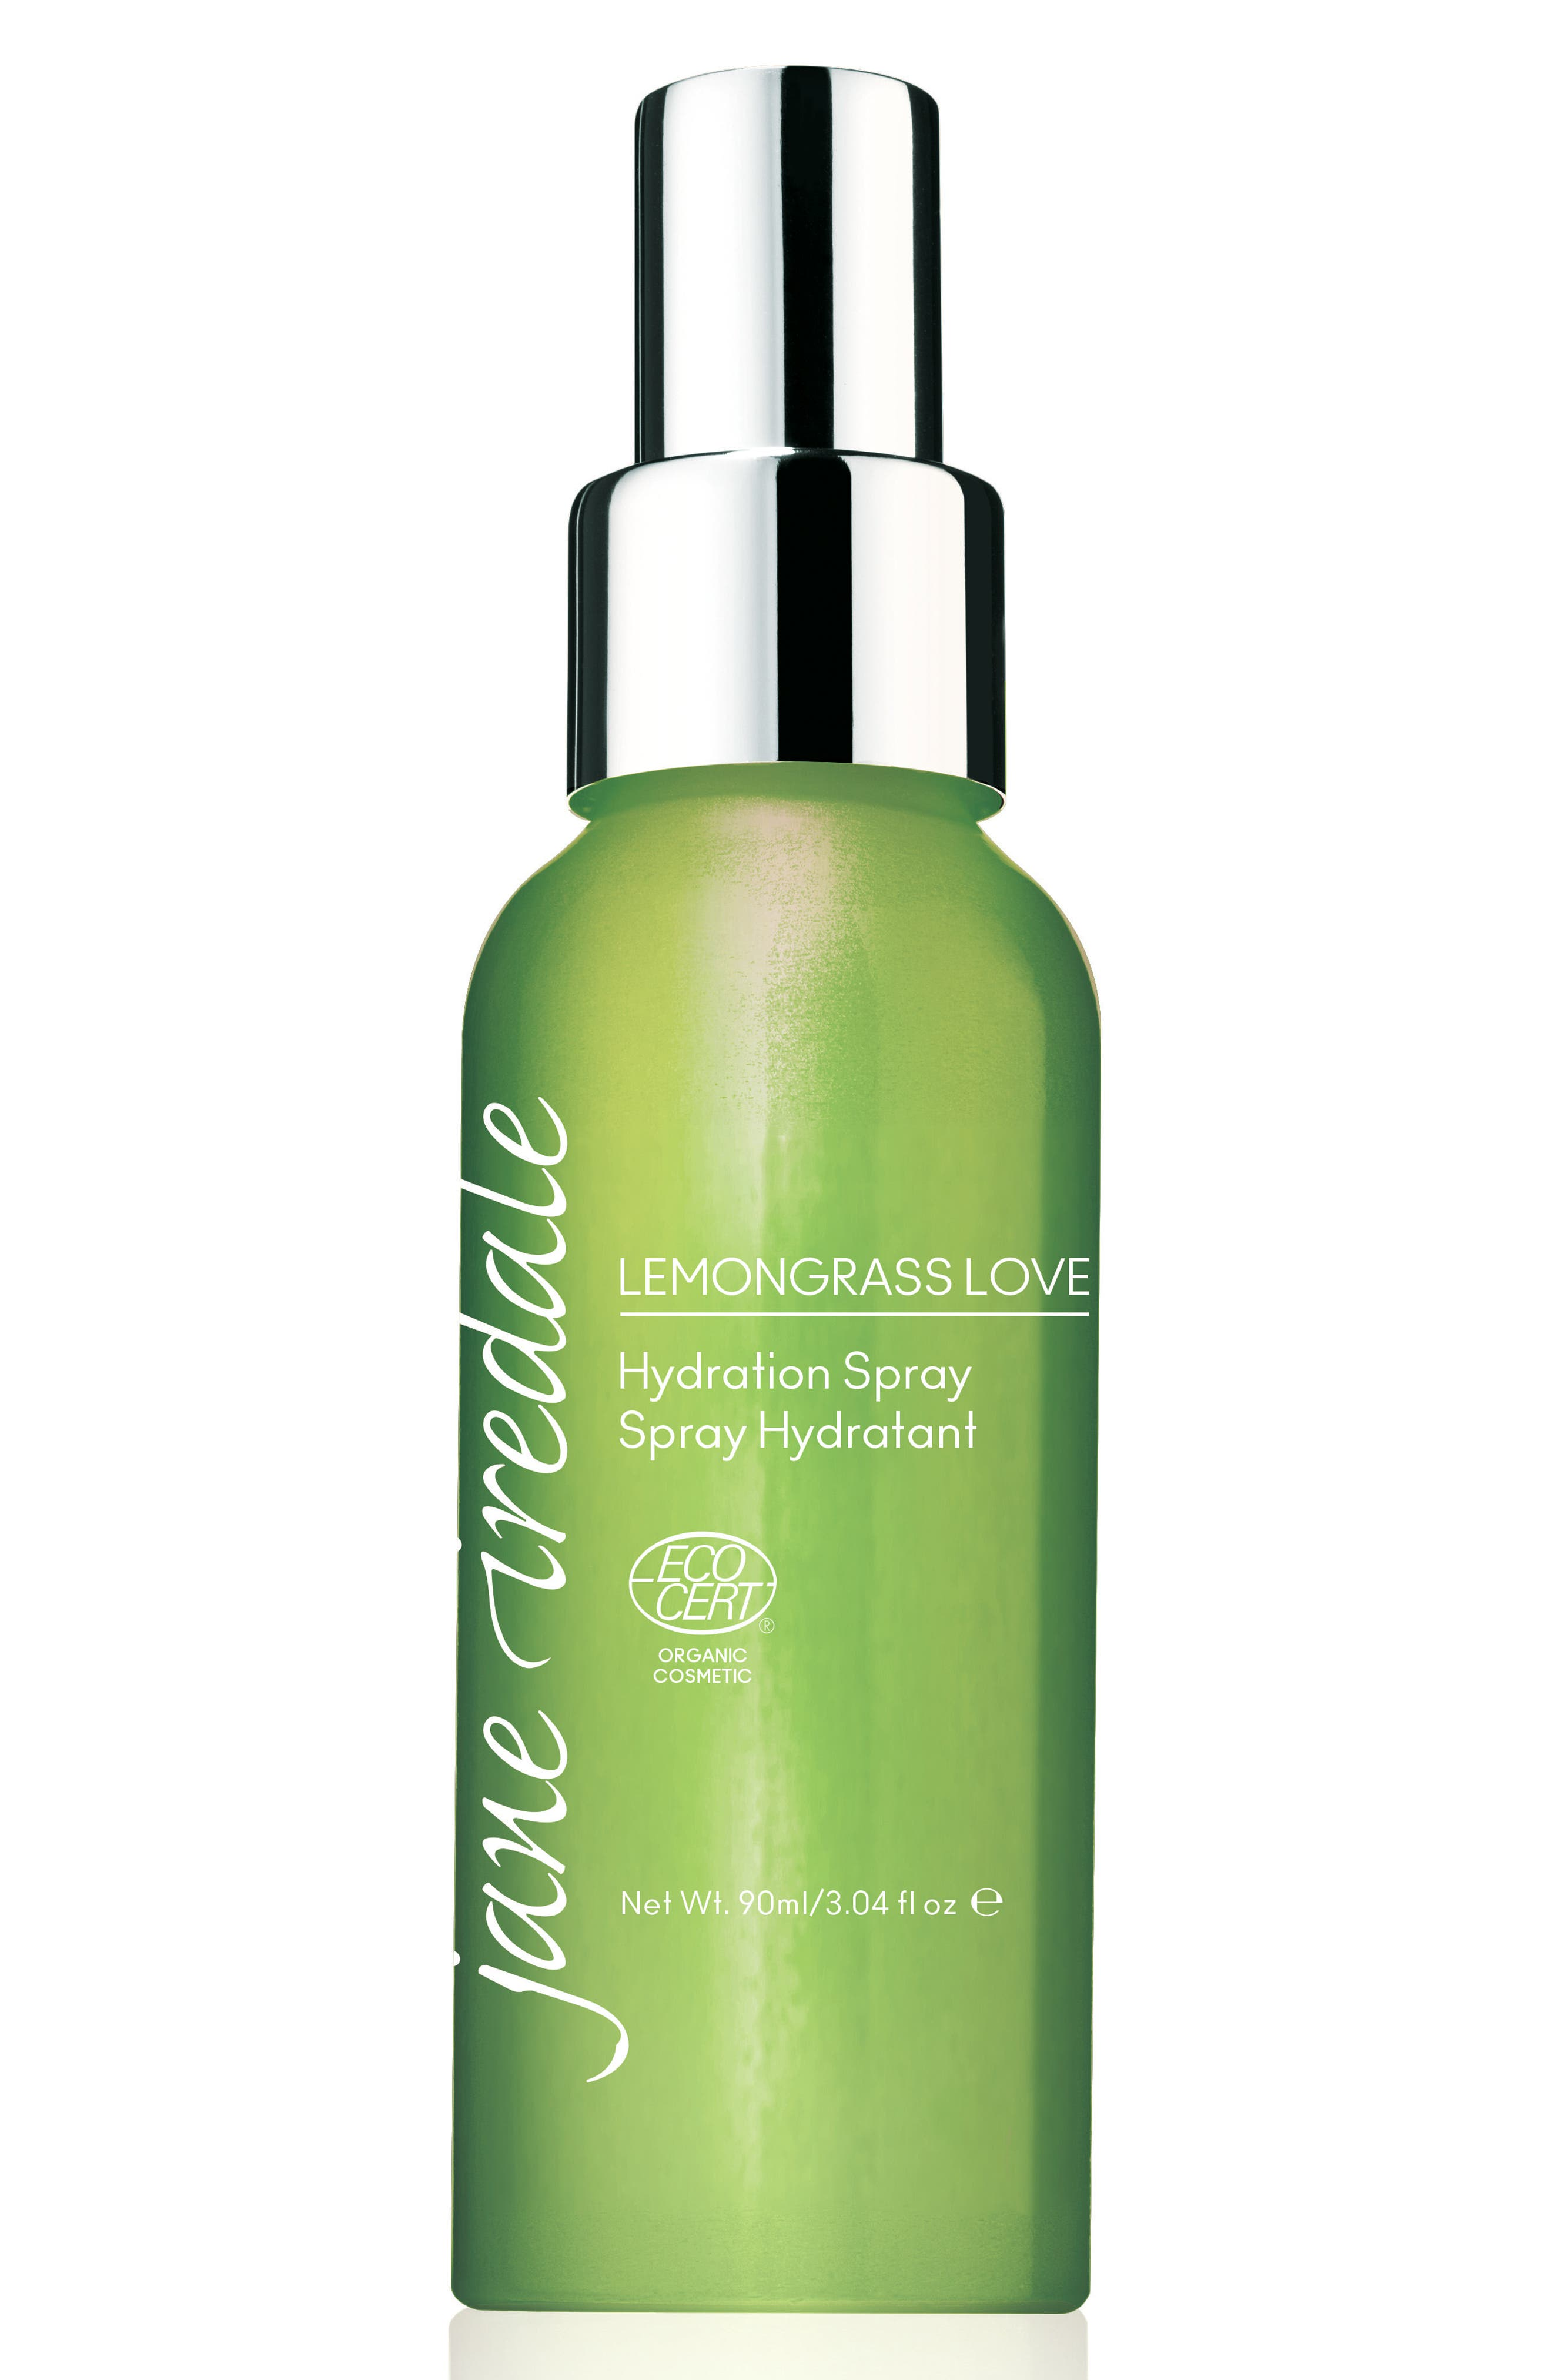 Alternate Image 1 Selected - jane iredale Lemongrass Love Hydration Spray